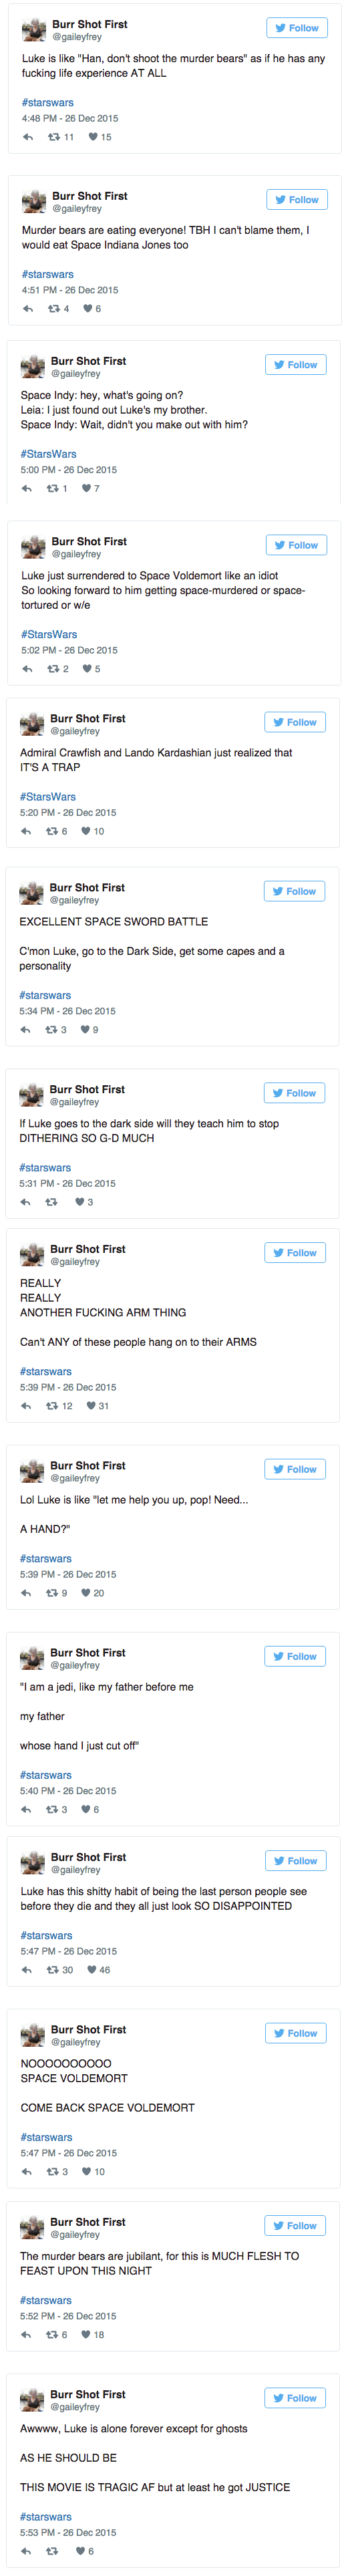 twitter post from person watching star wars first time